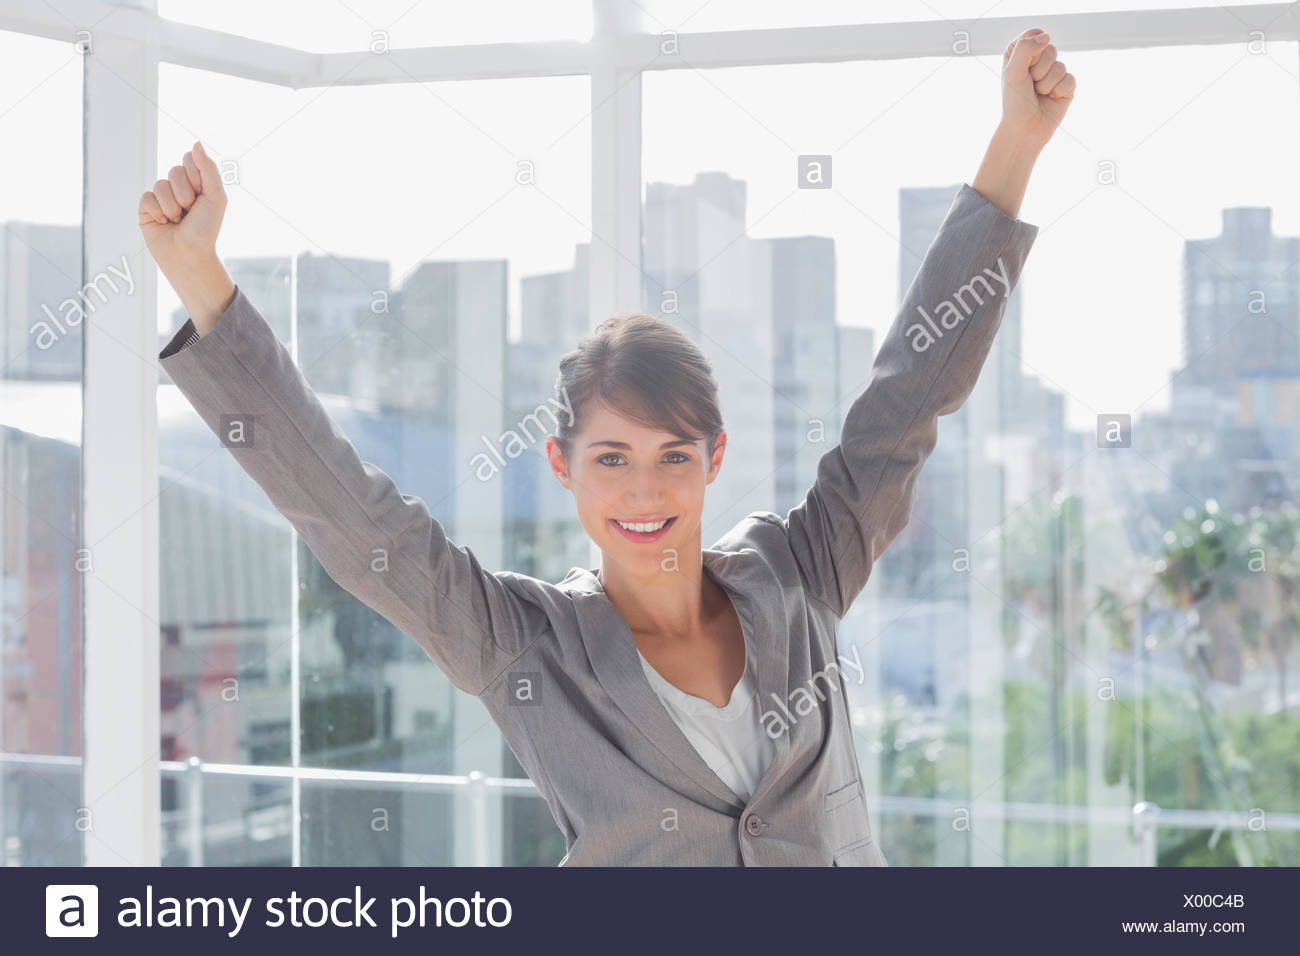 Excited businesswoman cheering and smiling - Stock Image